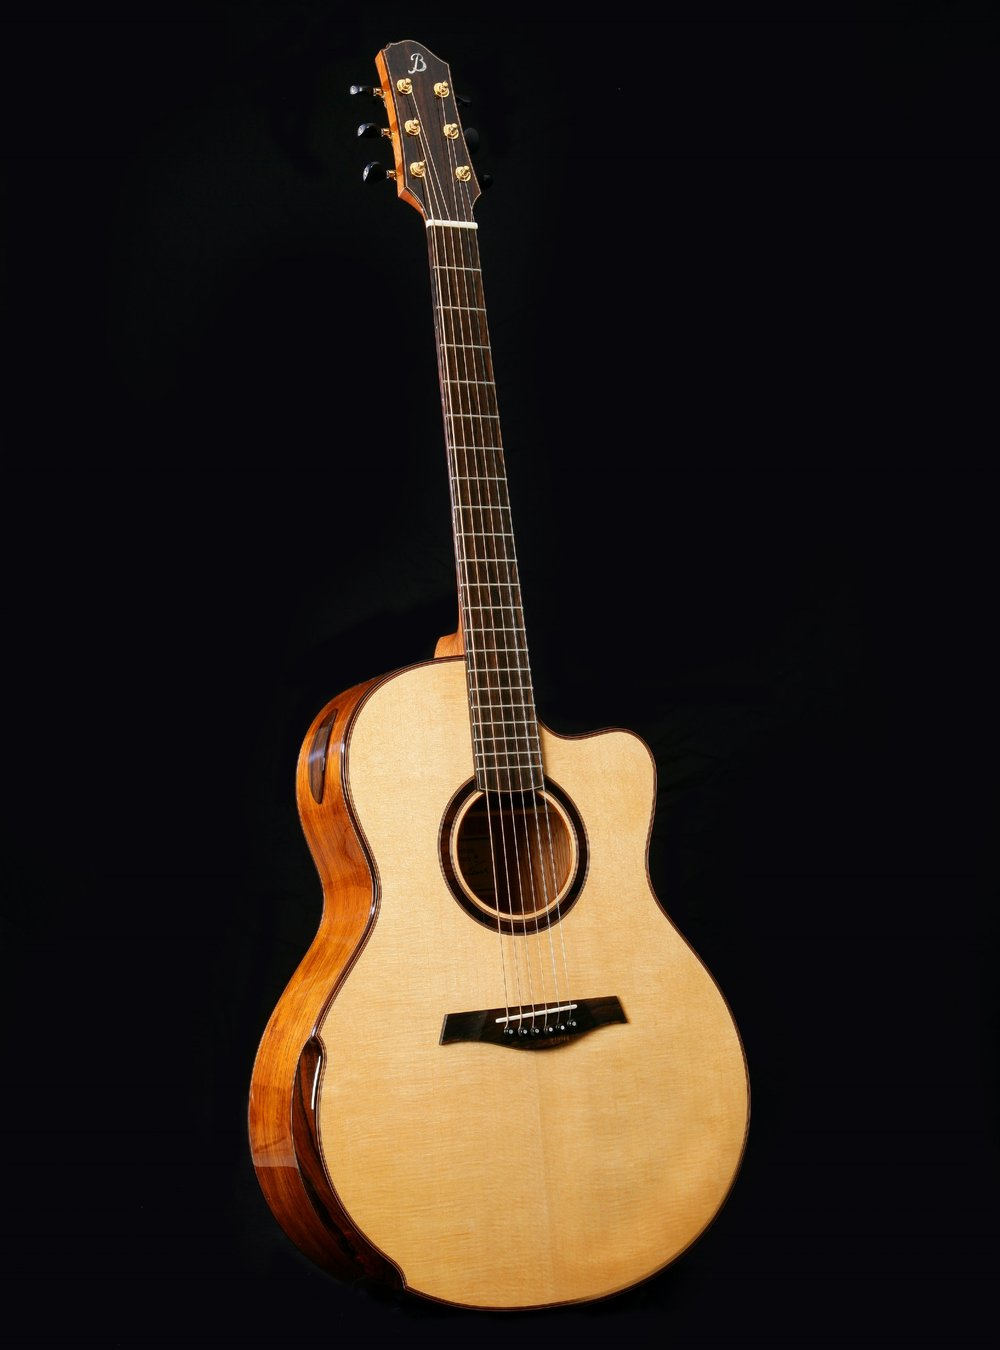 Concert Standard - I've been building and developing this model since the late 1970s and it continues to be one of my most popular guitars. Genuinely versatile, it is equally responsive to fingerpicking or strumming. DimensionsUpper Bout: 11 1/4